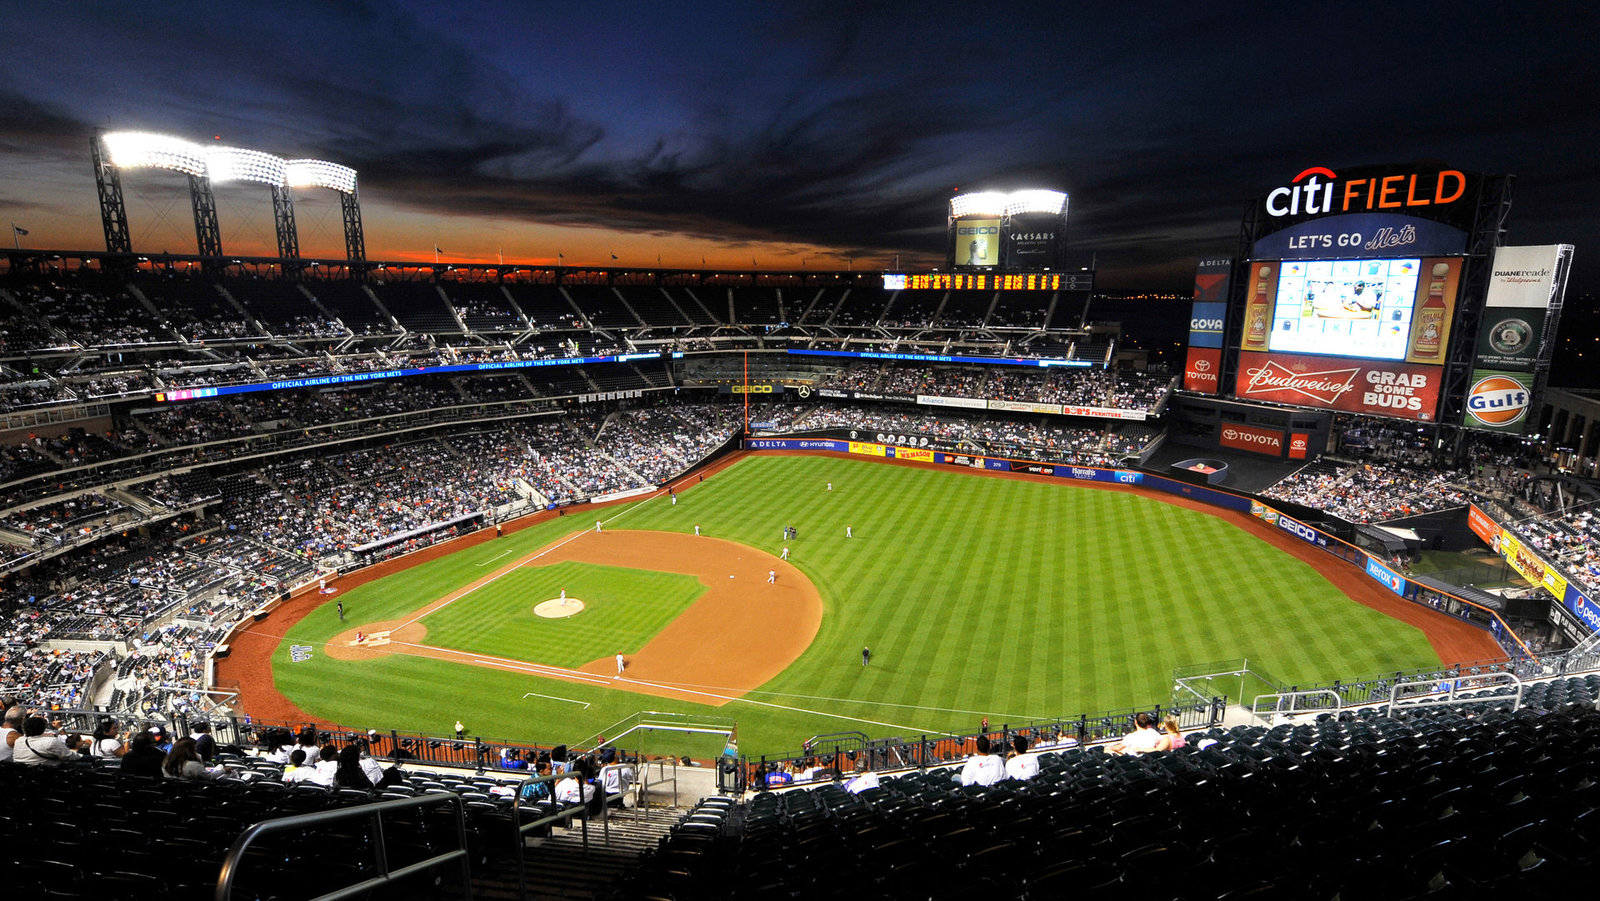 Live Event Take A Tour Of Citi Field With A New York